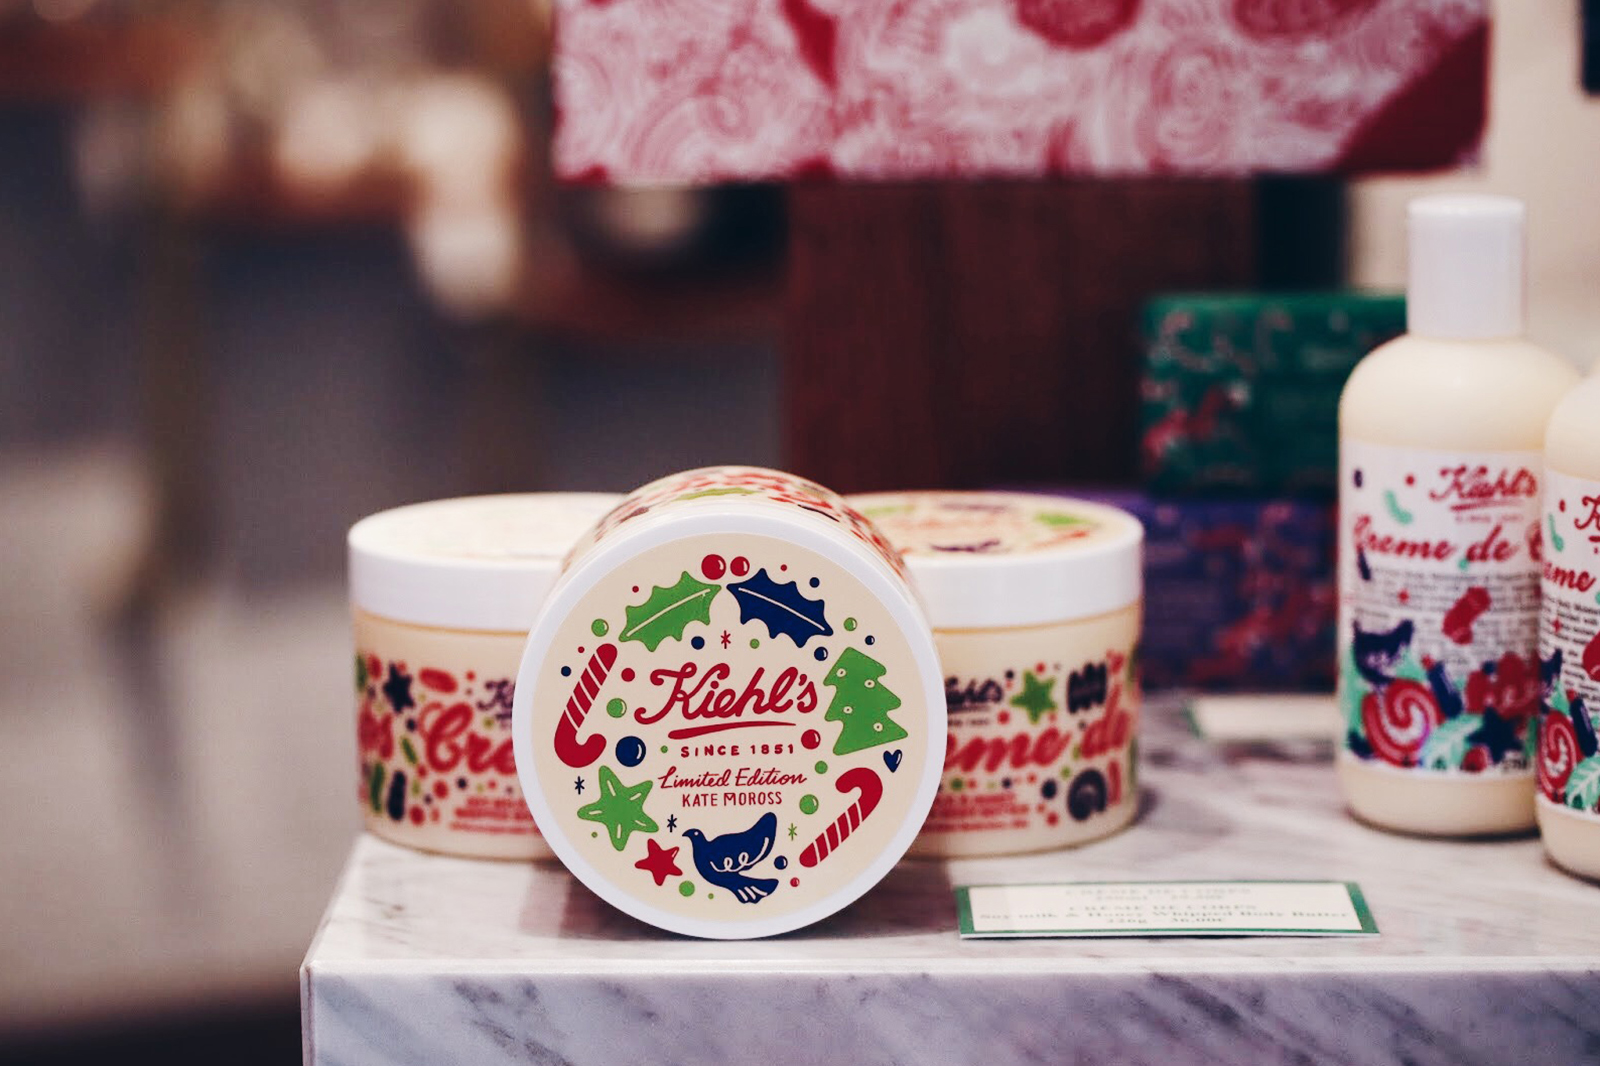 kiehls collection noel 2017 kate moross